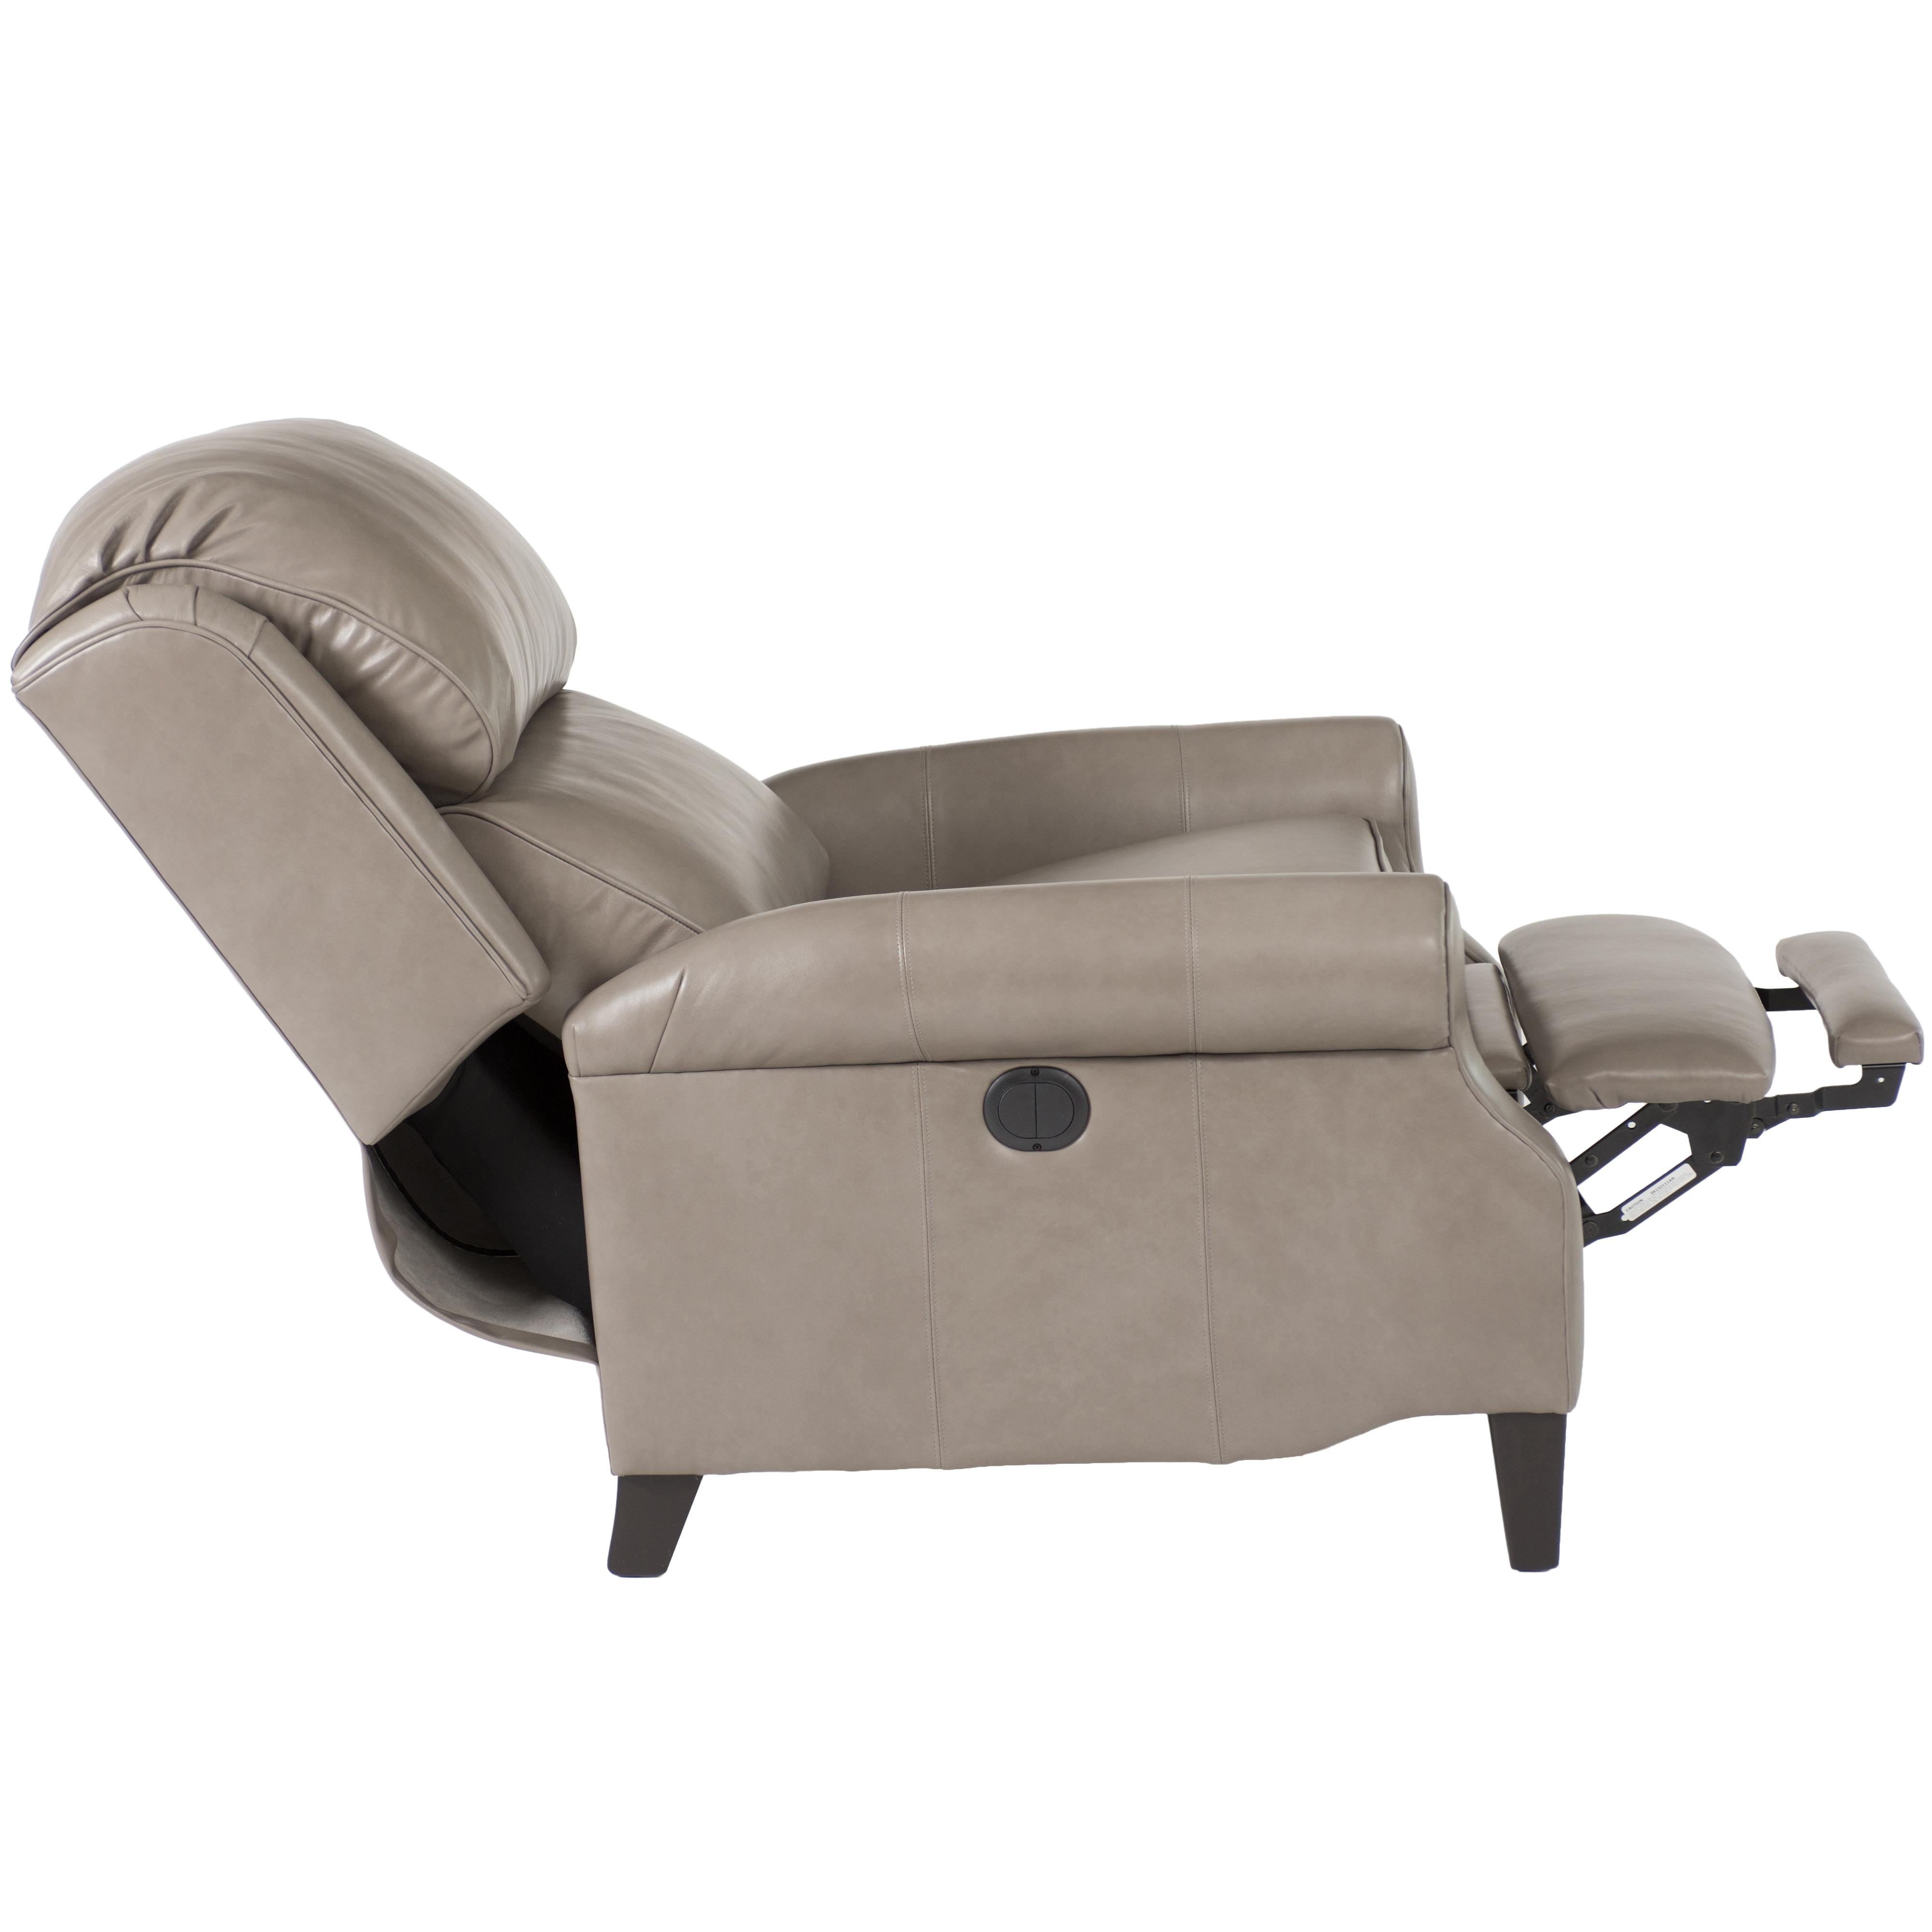 Traditional Leather Big and Tall Pressback Reclining Chair with